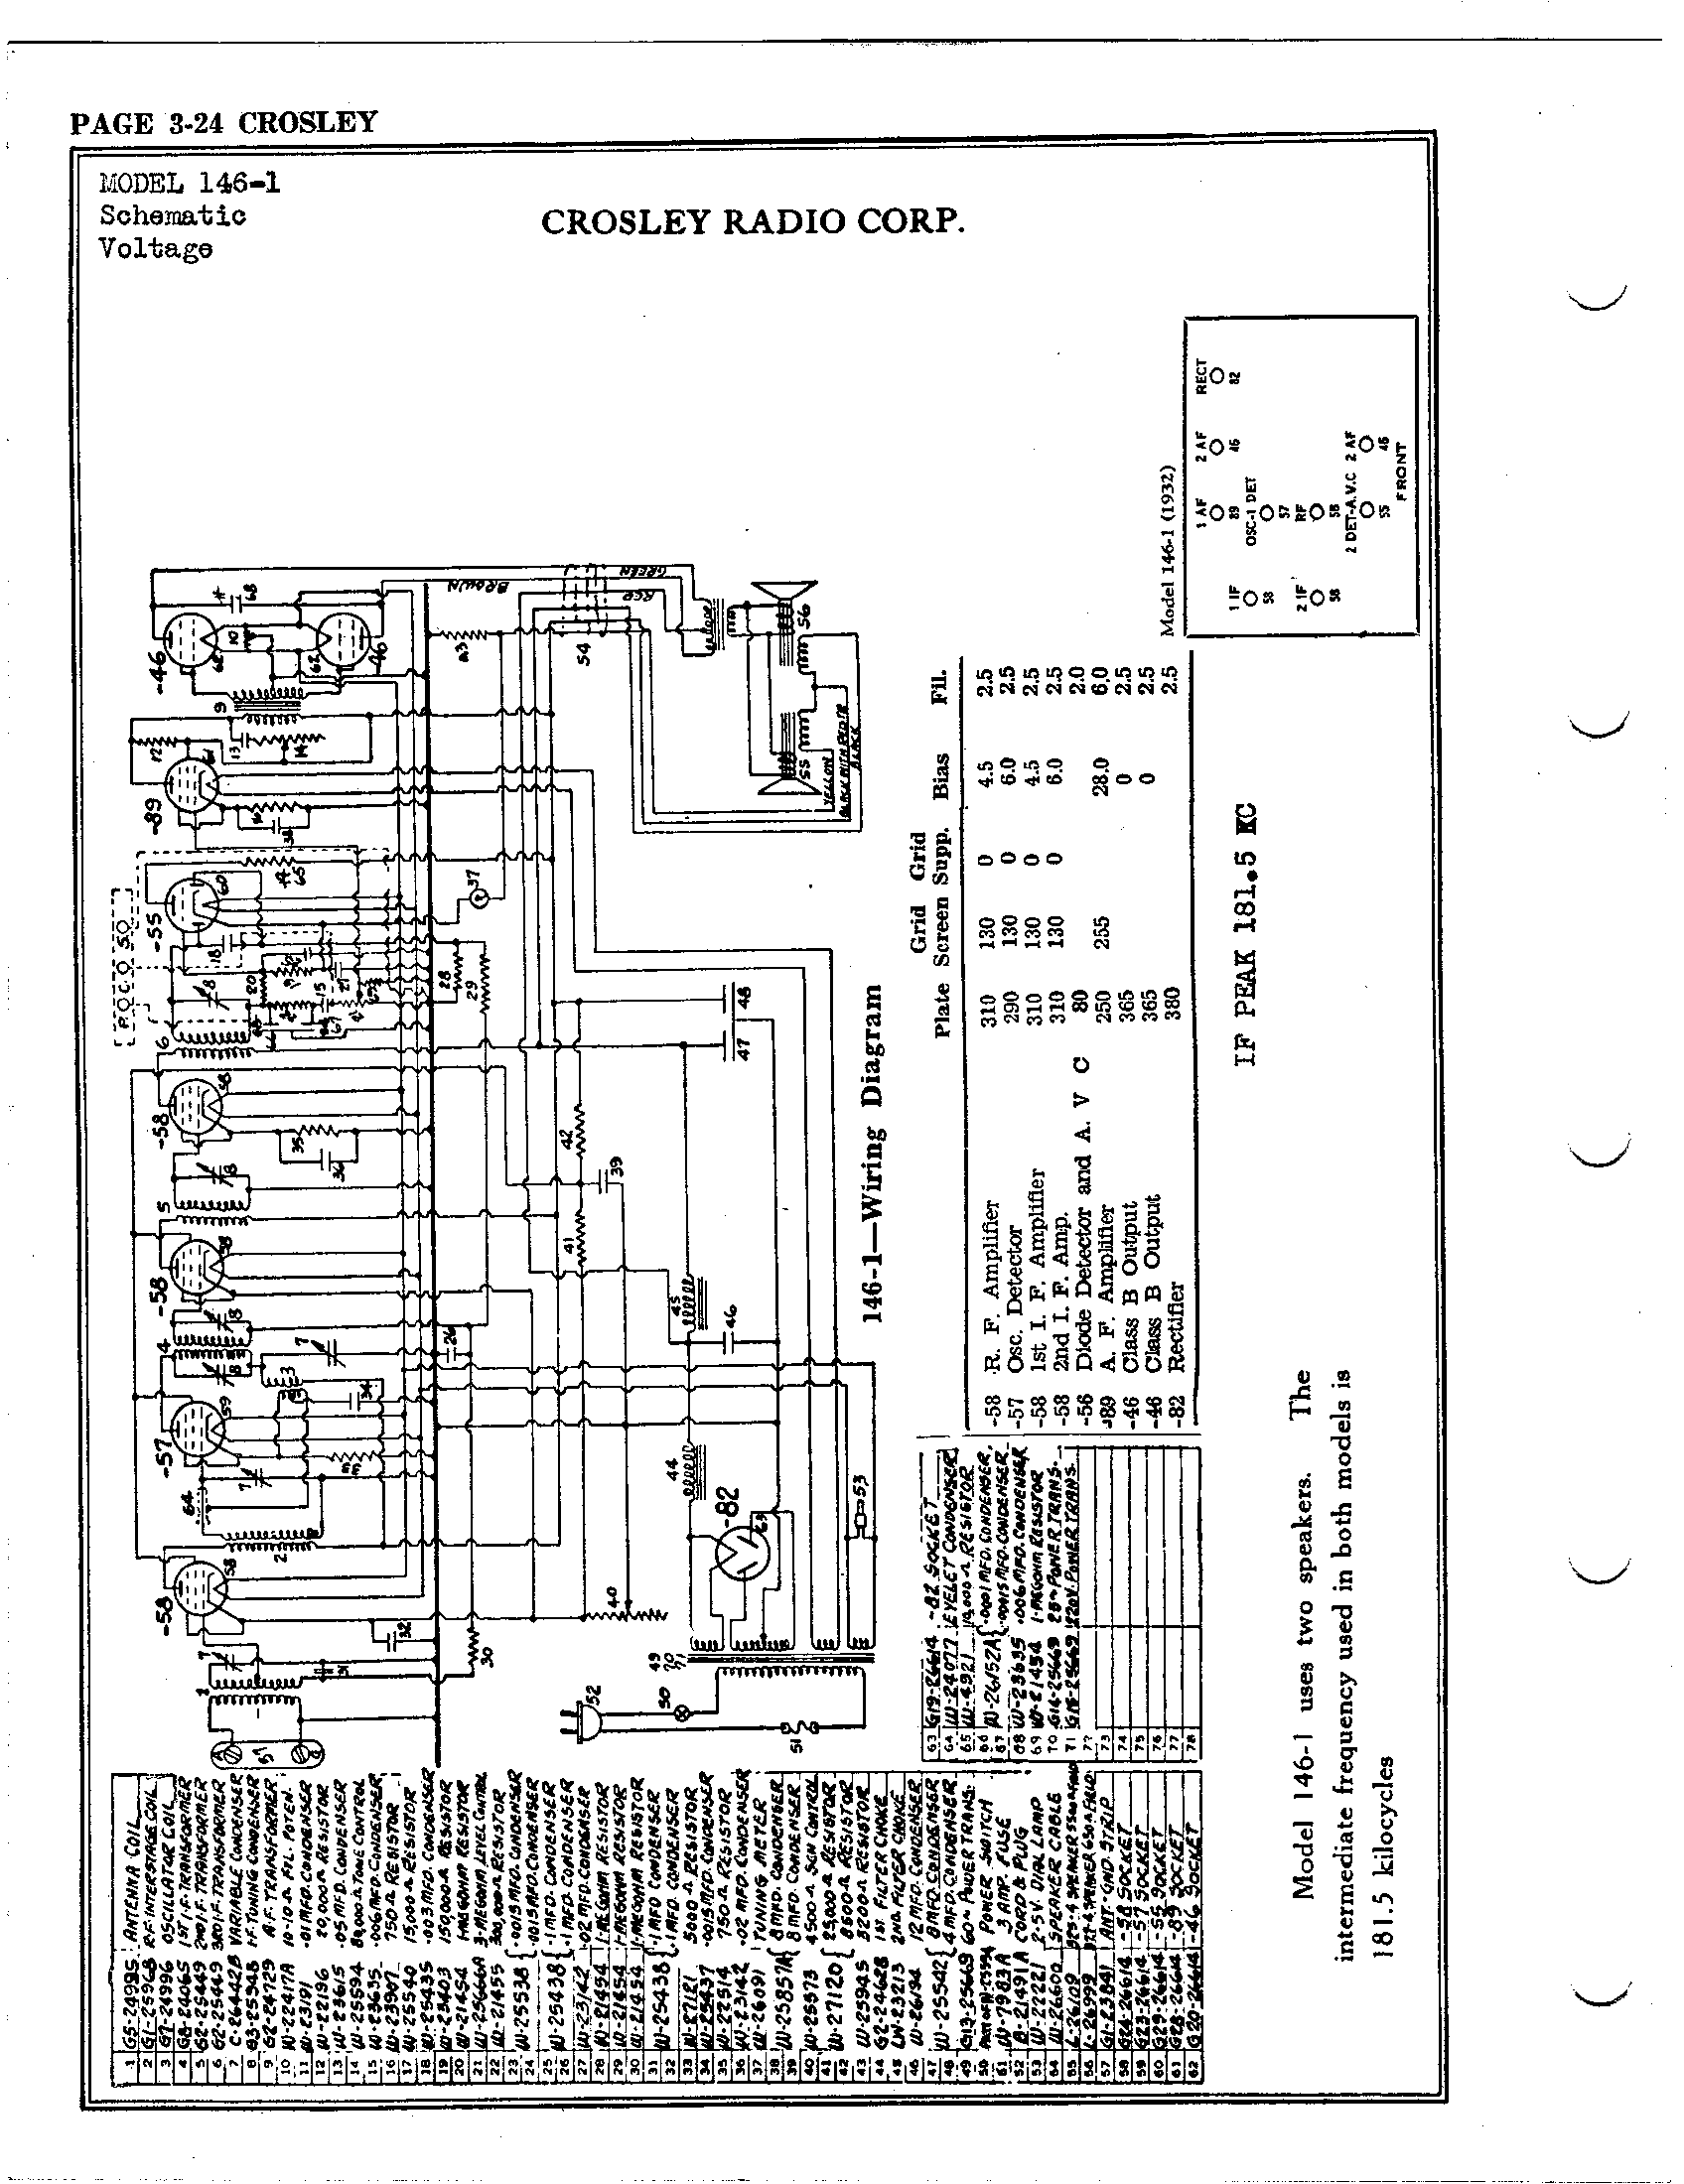 Krpa 11ag 120 Wiring Diagram as well 0216 011 in addition 1997 Kawasaki Bayou 220 Wiring Diagram furthermore Mars Time Delay Relay Wiring Diagram moreover Bosch Relay Wiring Diagram. on idec relay wiring diagrams